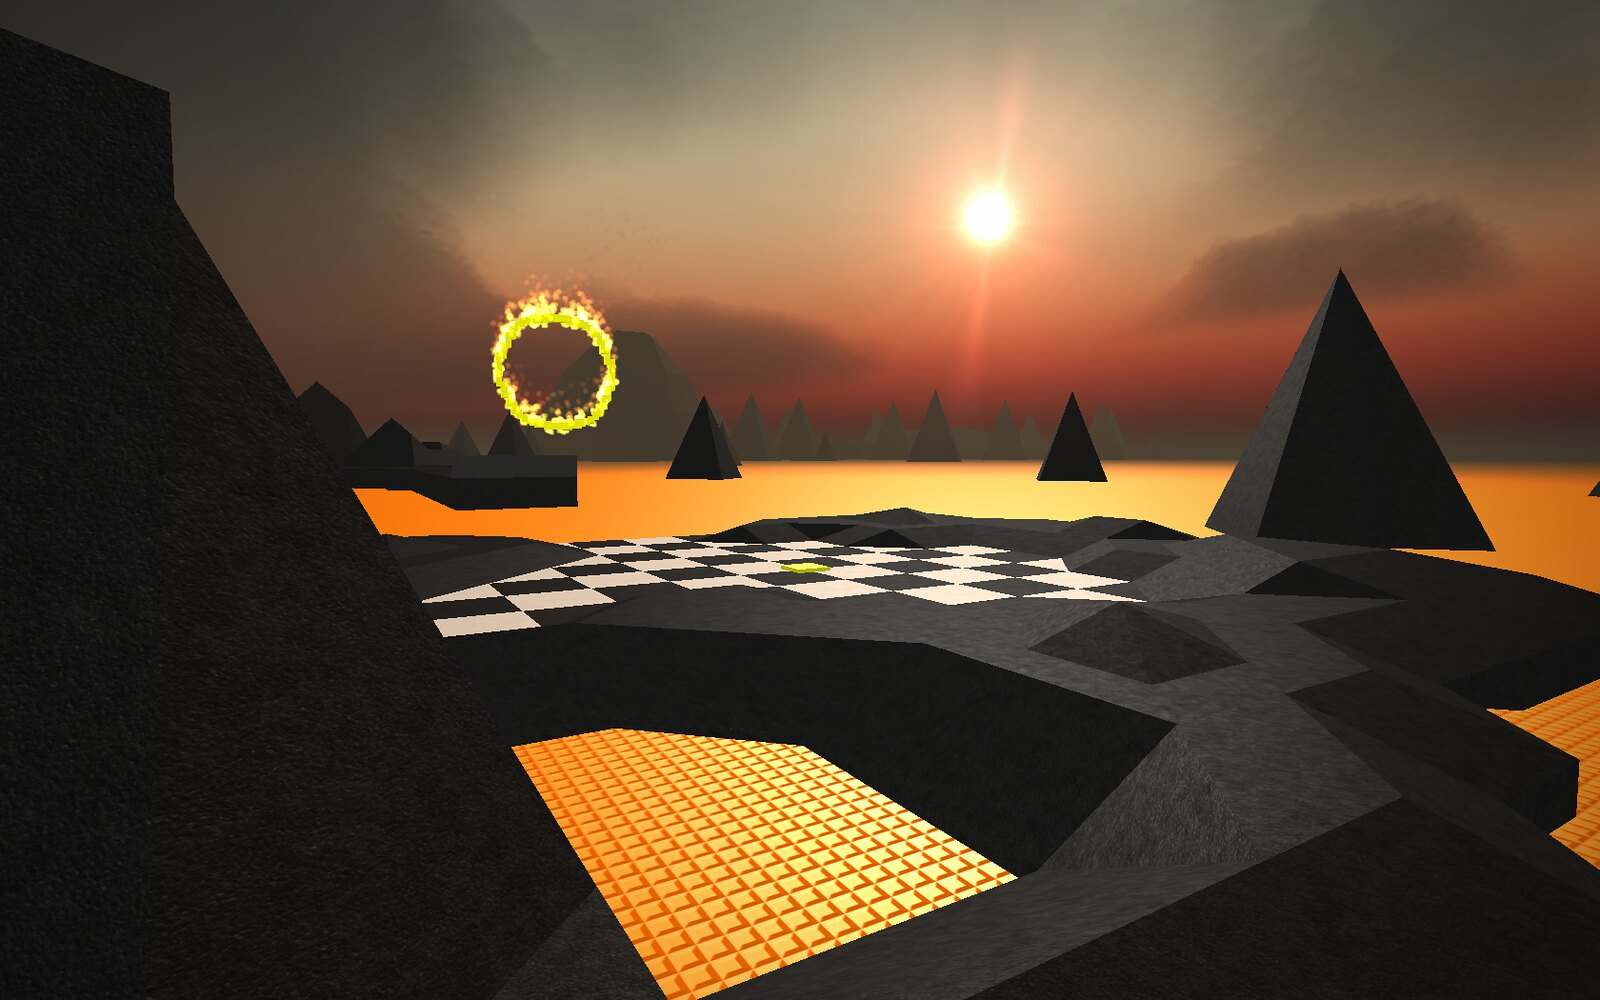 Jirues youse raceways submit your racetracks download link insert link here general themedescription of your track lava themed track with rocky structures sciox Images